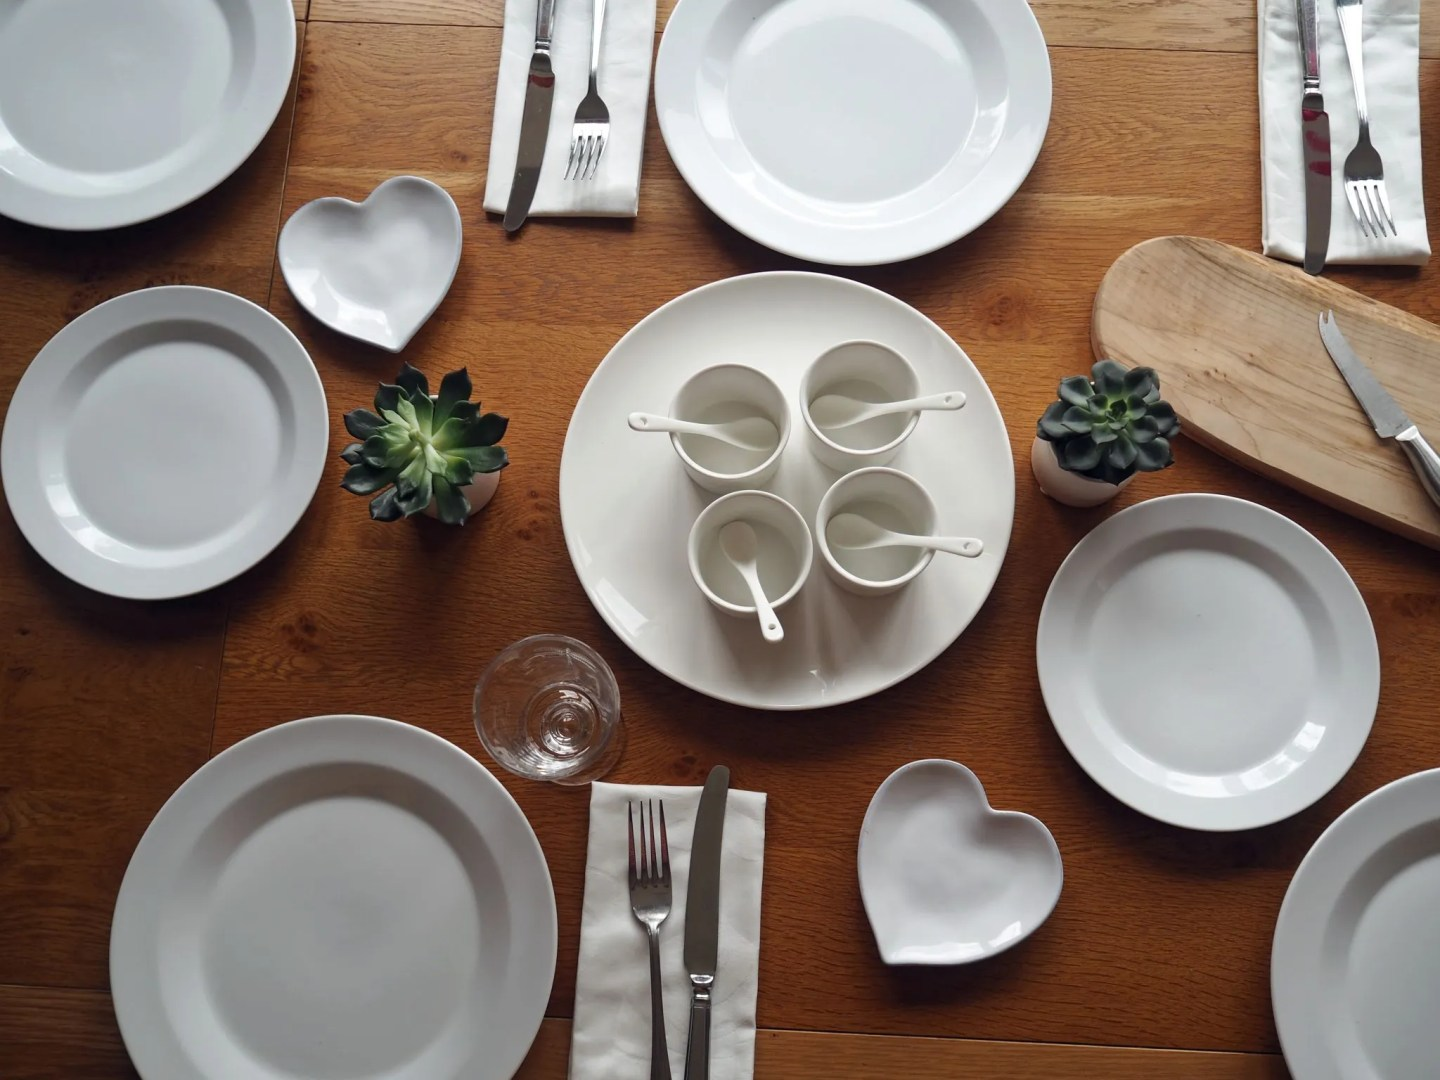 white-table-setting-james-martin-denby-dip-dishes-ramekin-heart-shaped-plates-white-company